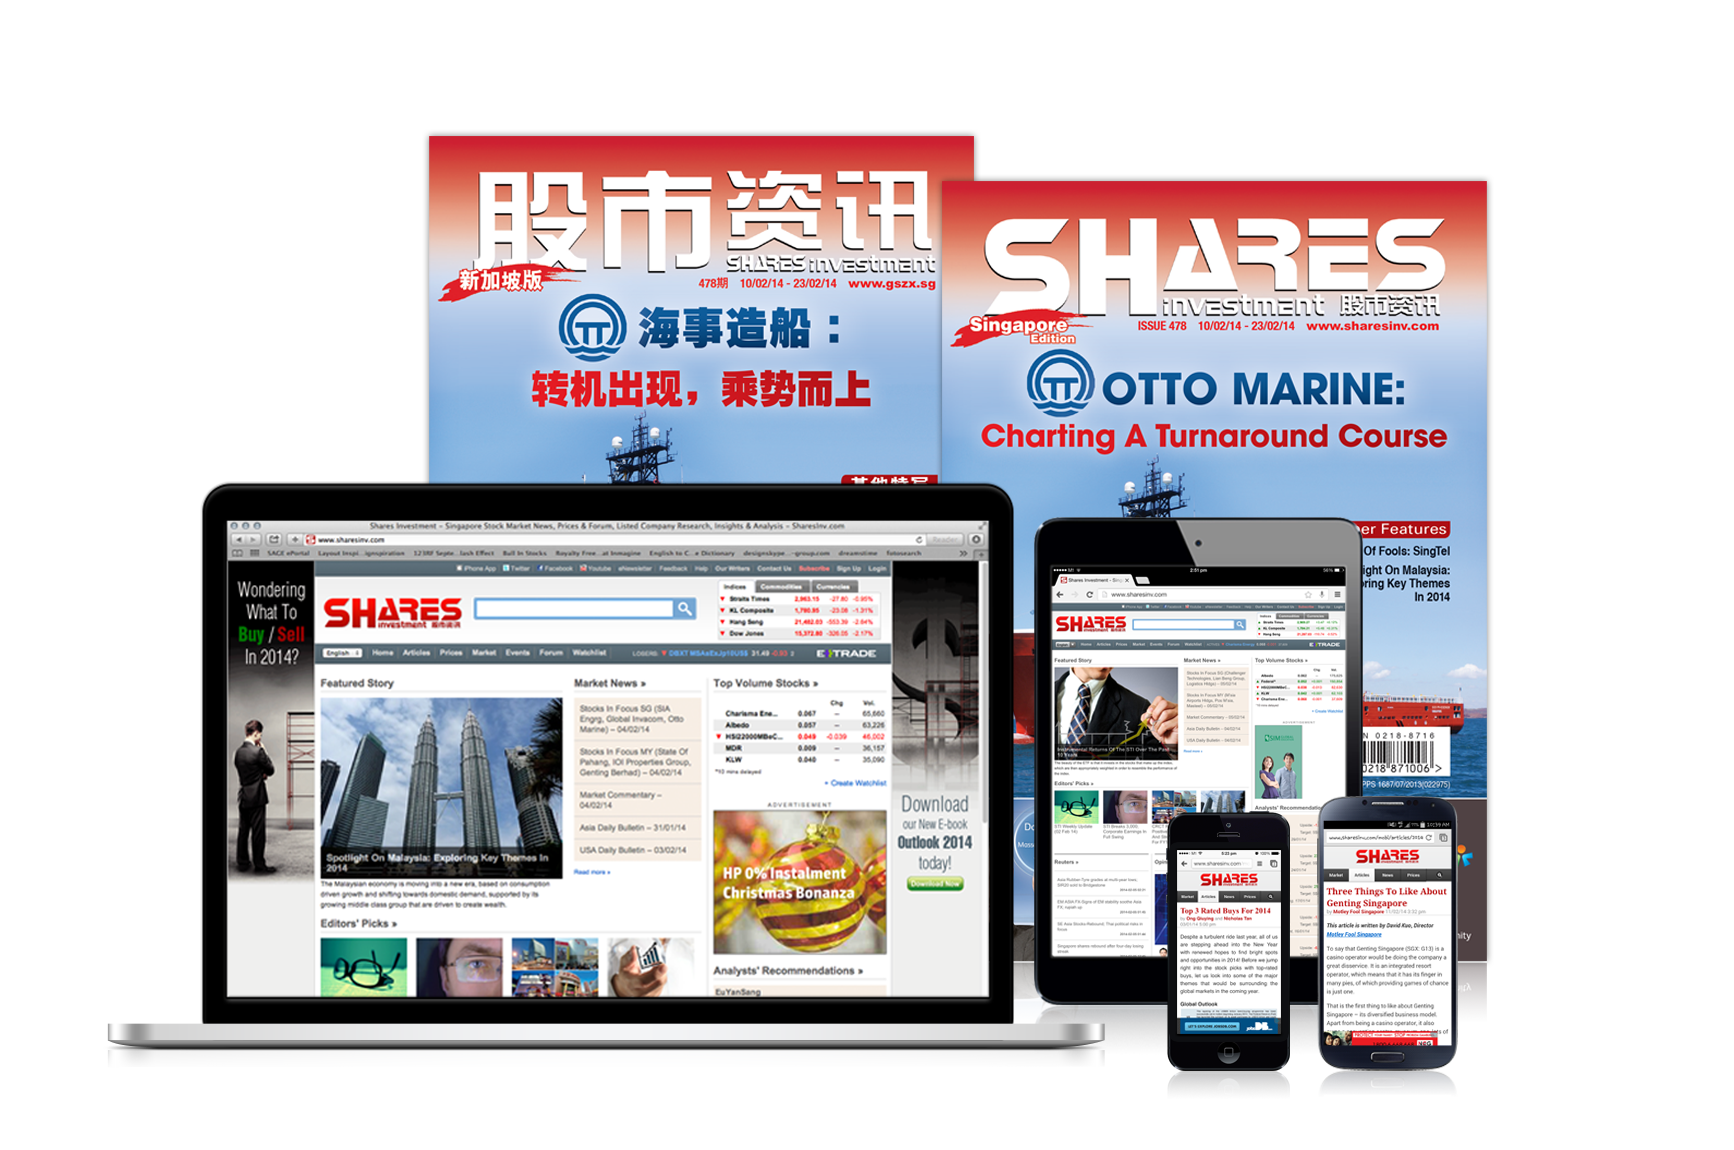 The Shares Investment product line. Believing in bilingualism, our suite of digital products –  www.sharesinv.com ,  aspire.sharesinv.com  and  cj.sharesinv.com  – engages more than 220,000 affluent investors every month. One of the biggest Chinese language host of investment seminars, join us to hear what our thought leaders, listed company chiefs and social media influencers have got to say!